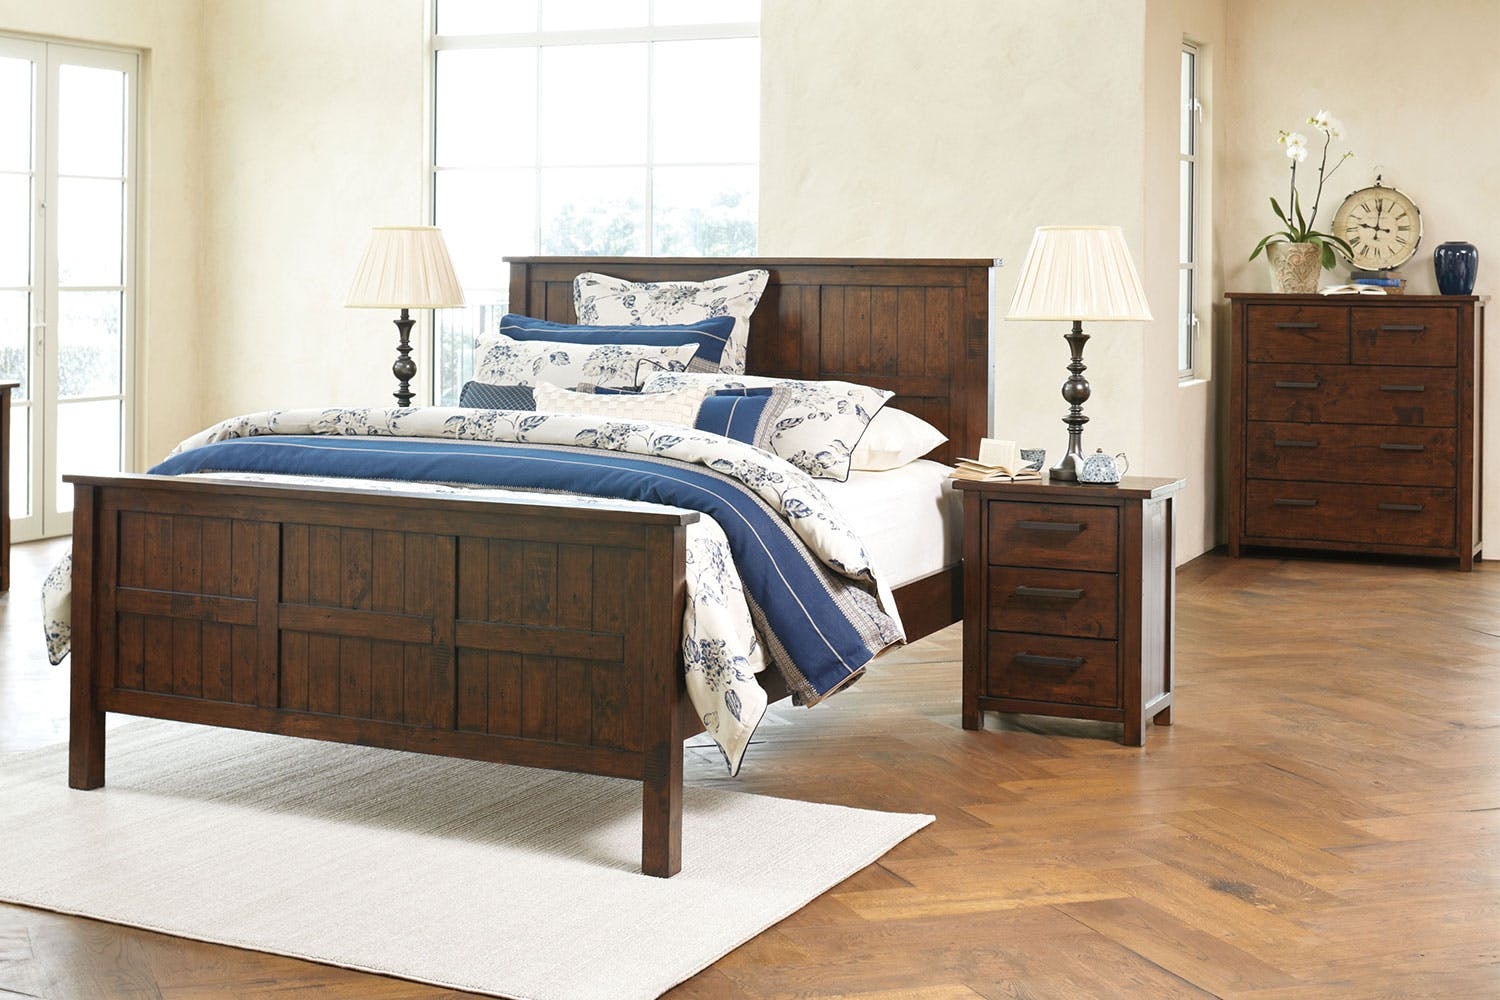 Farmhouse 4 Piece Bedroom Suite By John Young Furniture Harvey Norman New Z